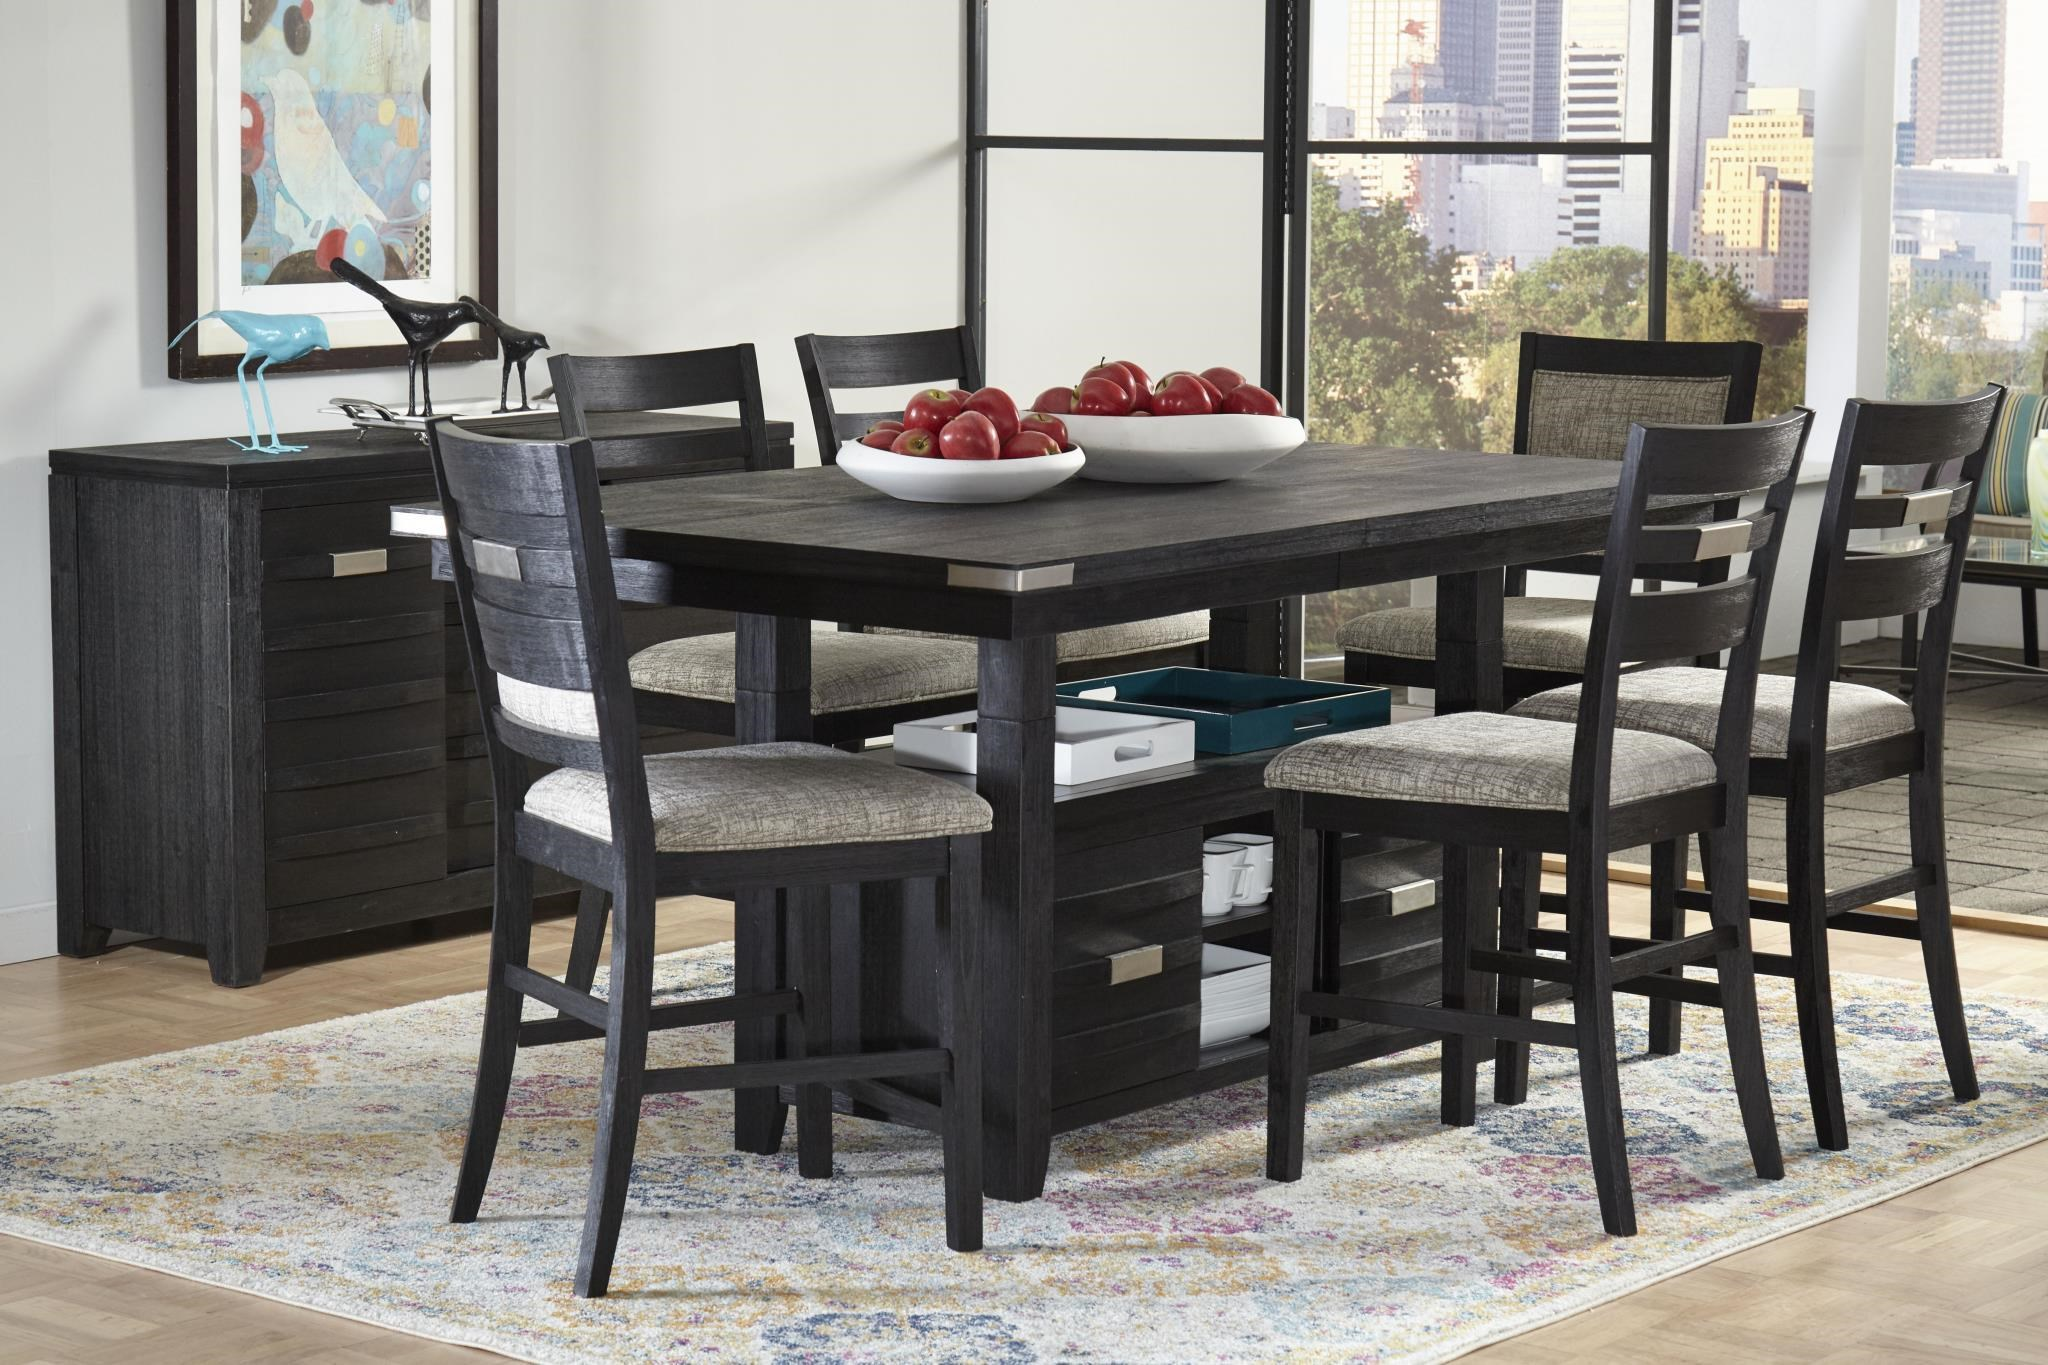 Altamonte 6-Piece Counter Height Dining Table Set by Jofran at Beck's Furniture